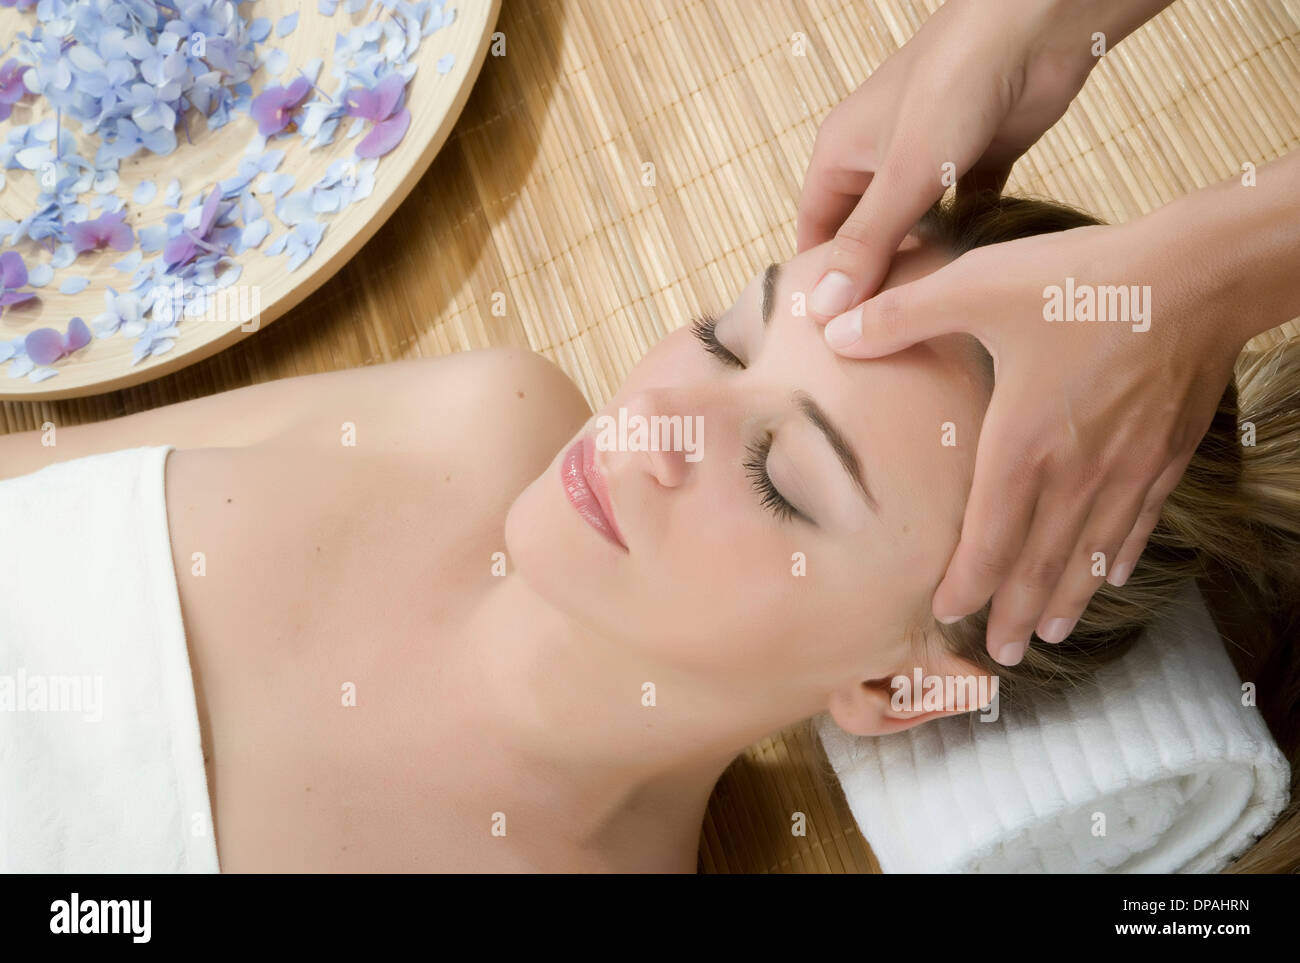 Woman at spa having forehead massaged - Stock Image